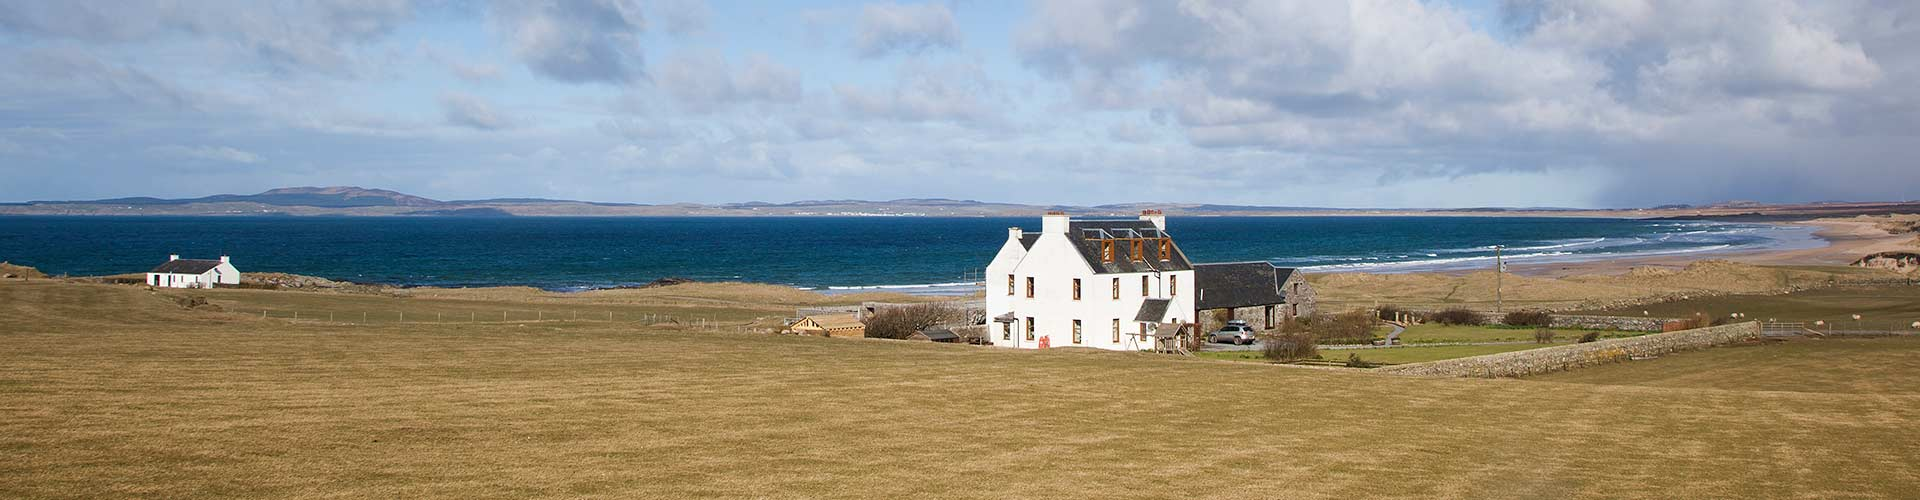 Bed And Breakfast Islay Kintra Farm Islay Self Catering Accommodation Camping On Islay